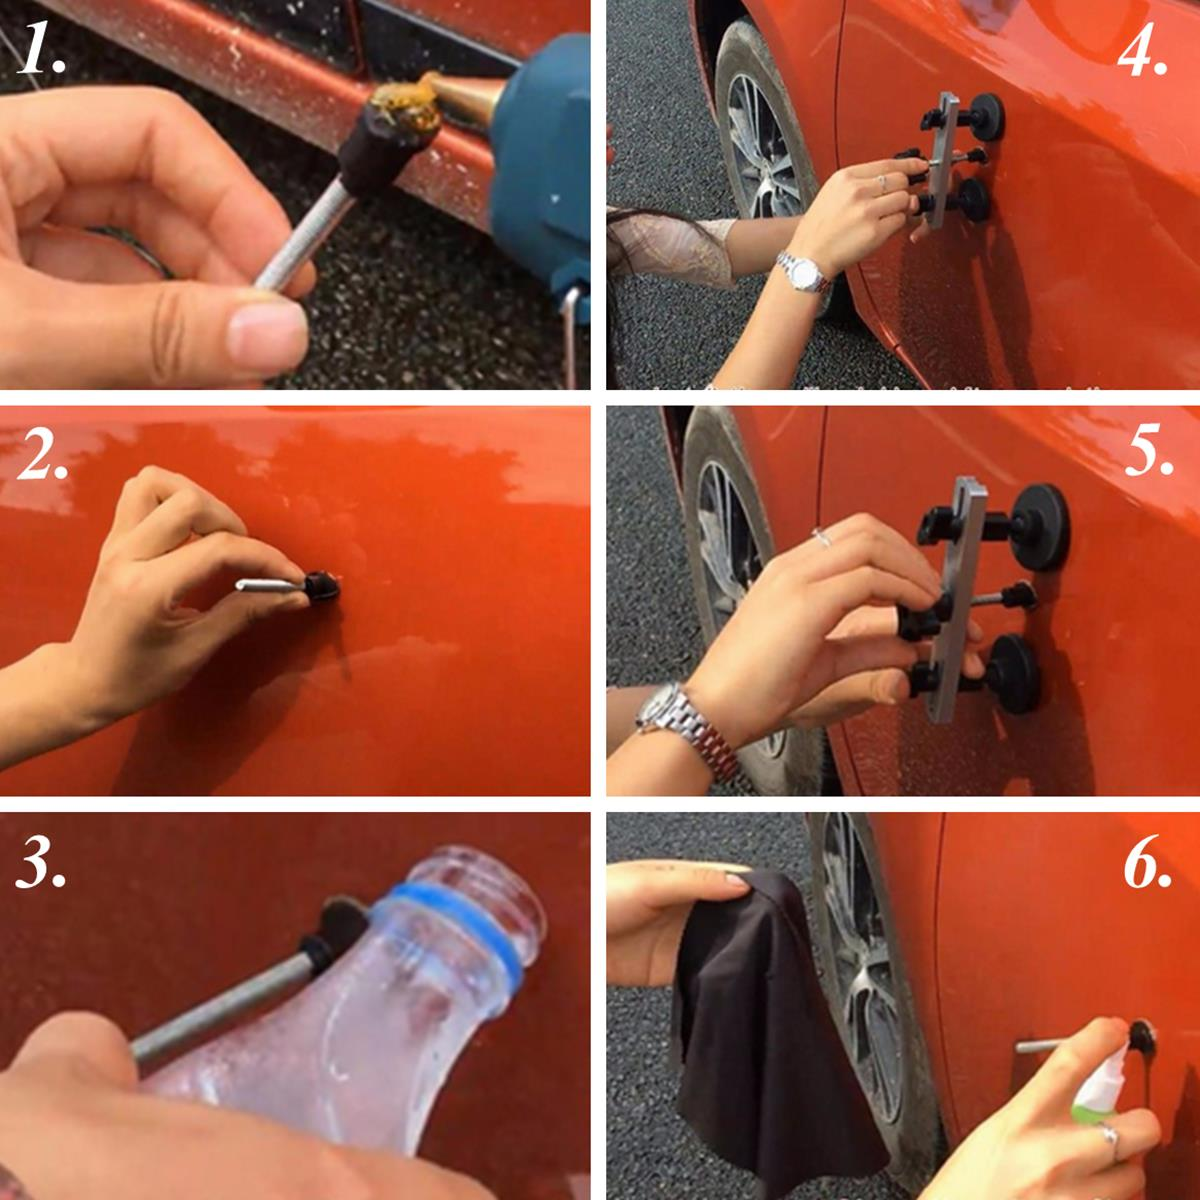 Car Paintless Dent Repair Removal PDR Tools Kit Auto Body Bridge Puller Glue Tab